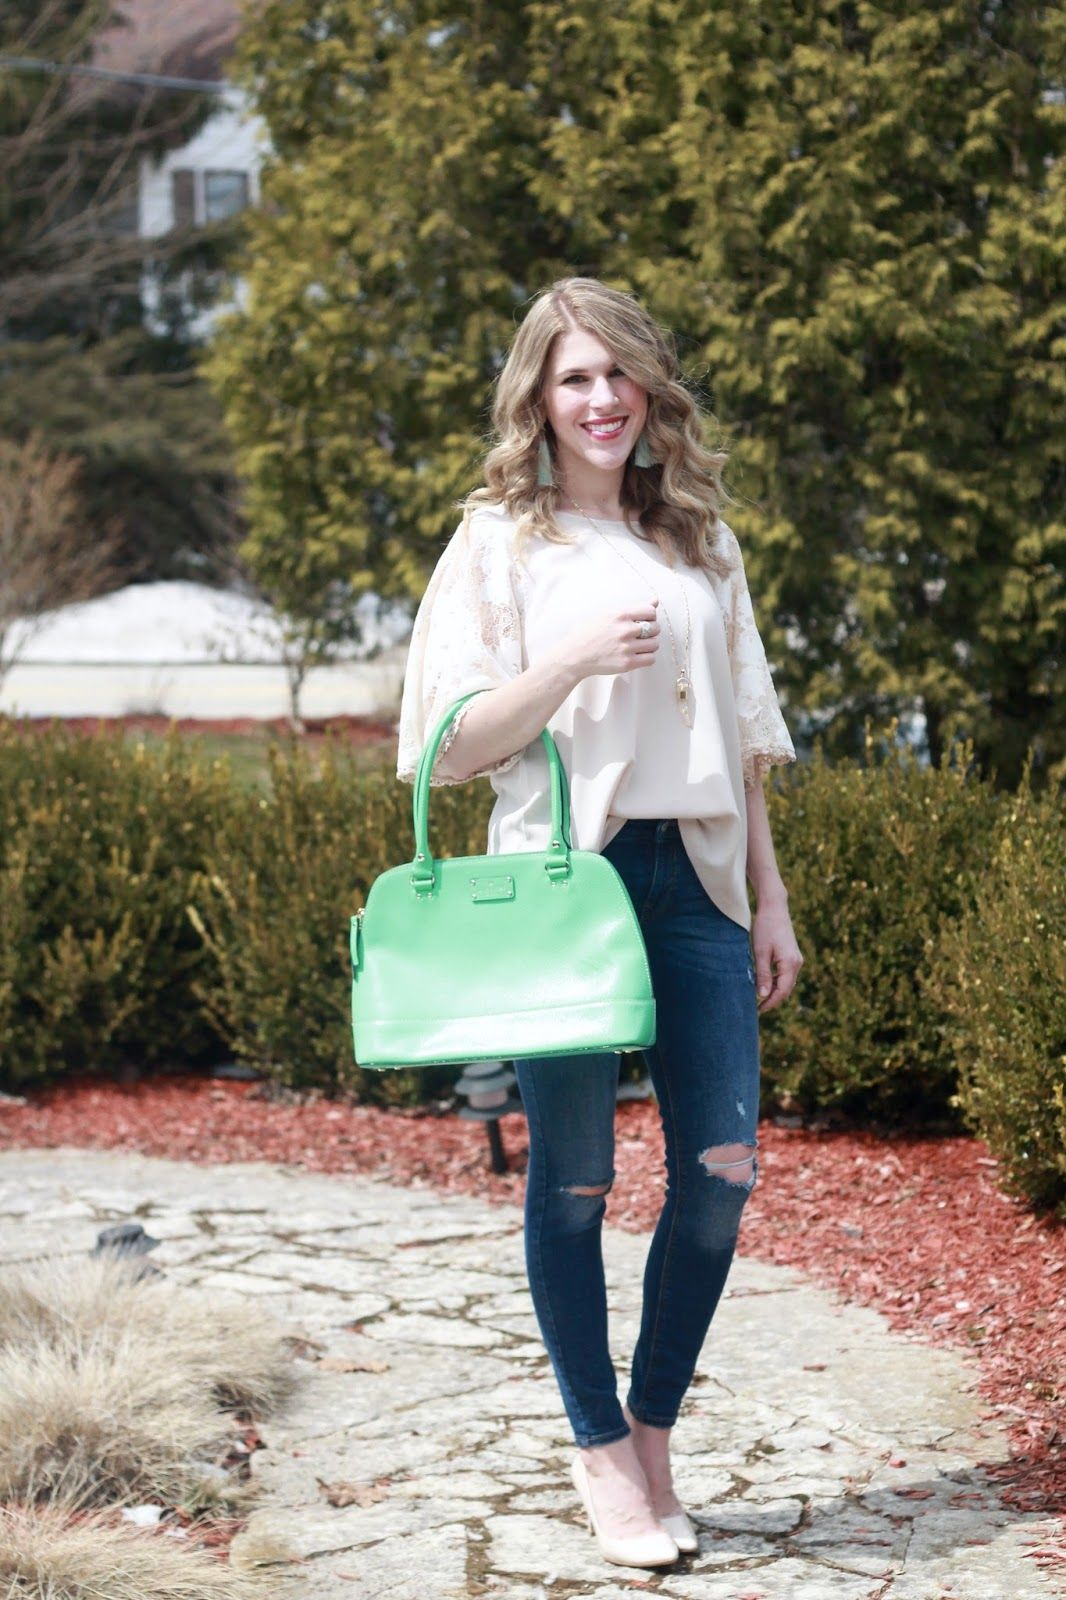 c7e7ce8b2d PinkBlush taupe lace sleeve blouse, distressed jeans, nude heels, green  Kate Spade bag, mint tassel earrings